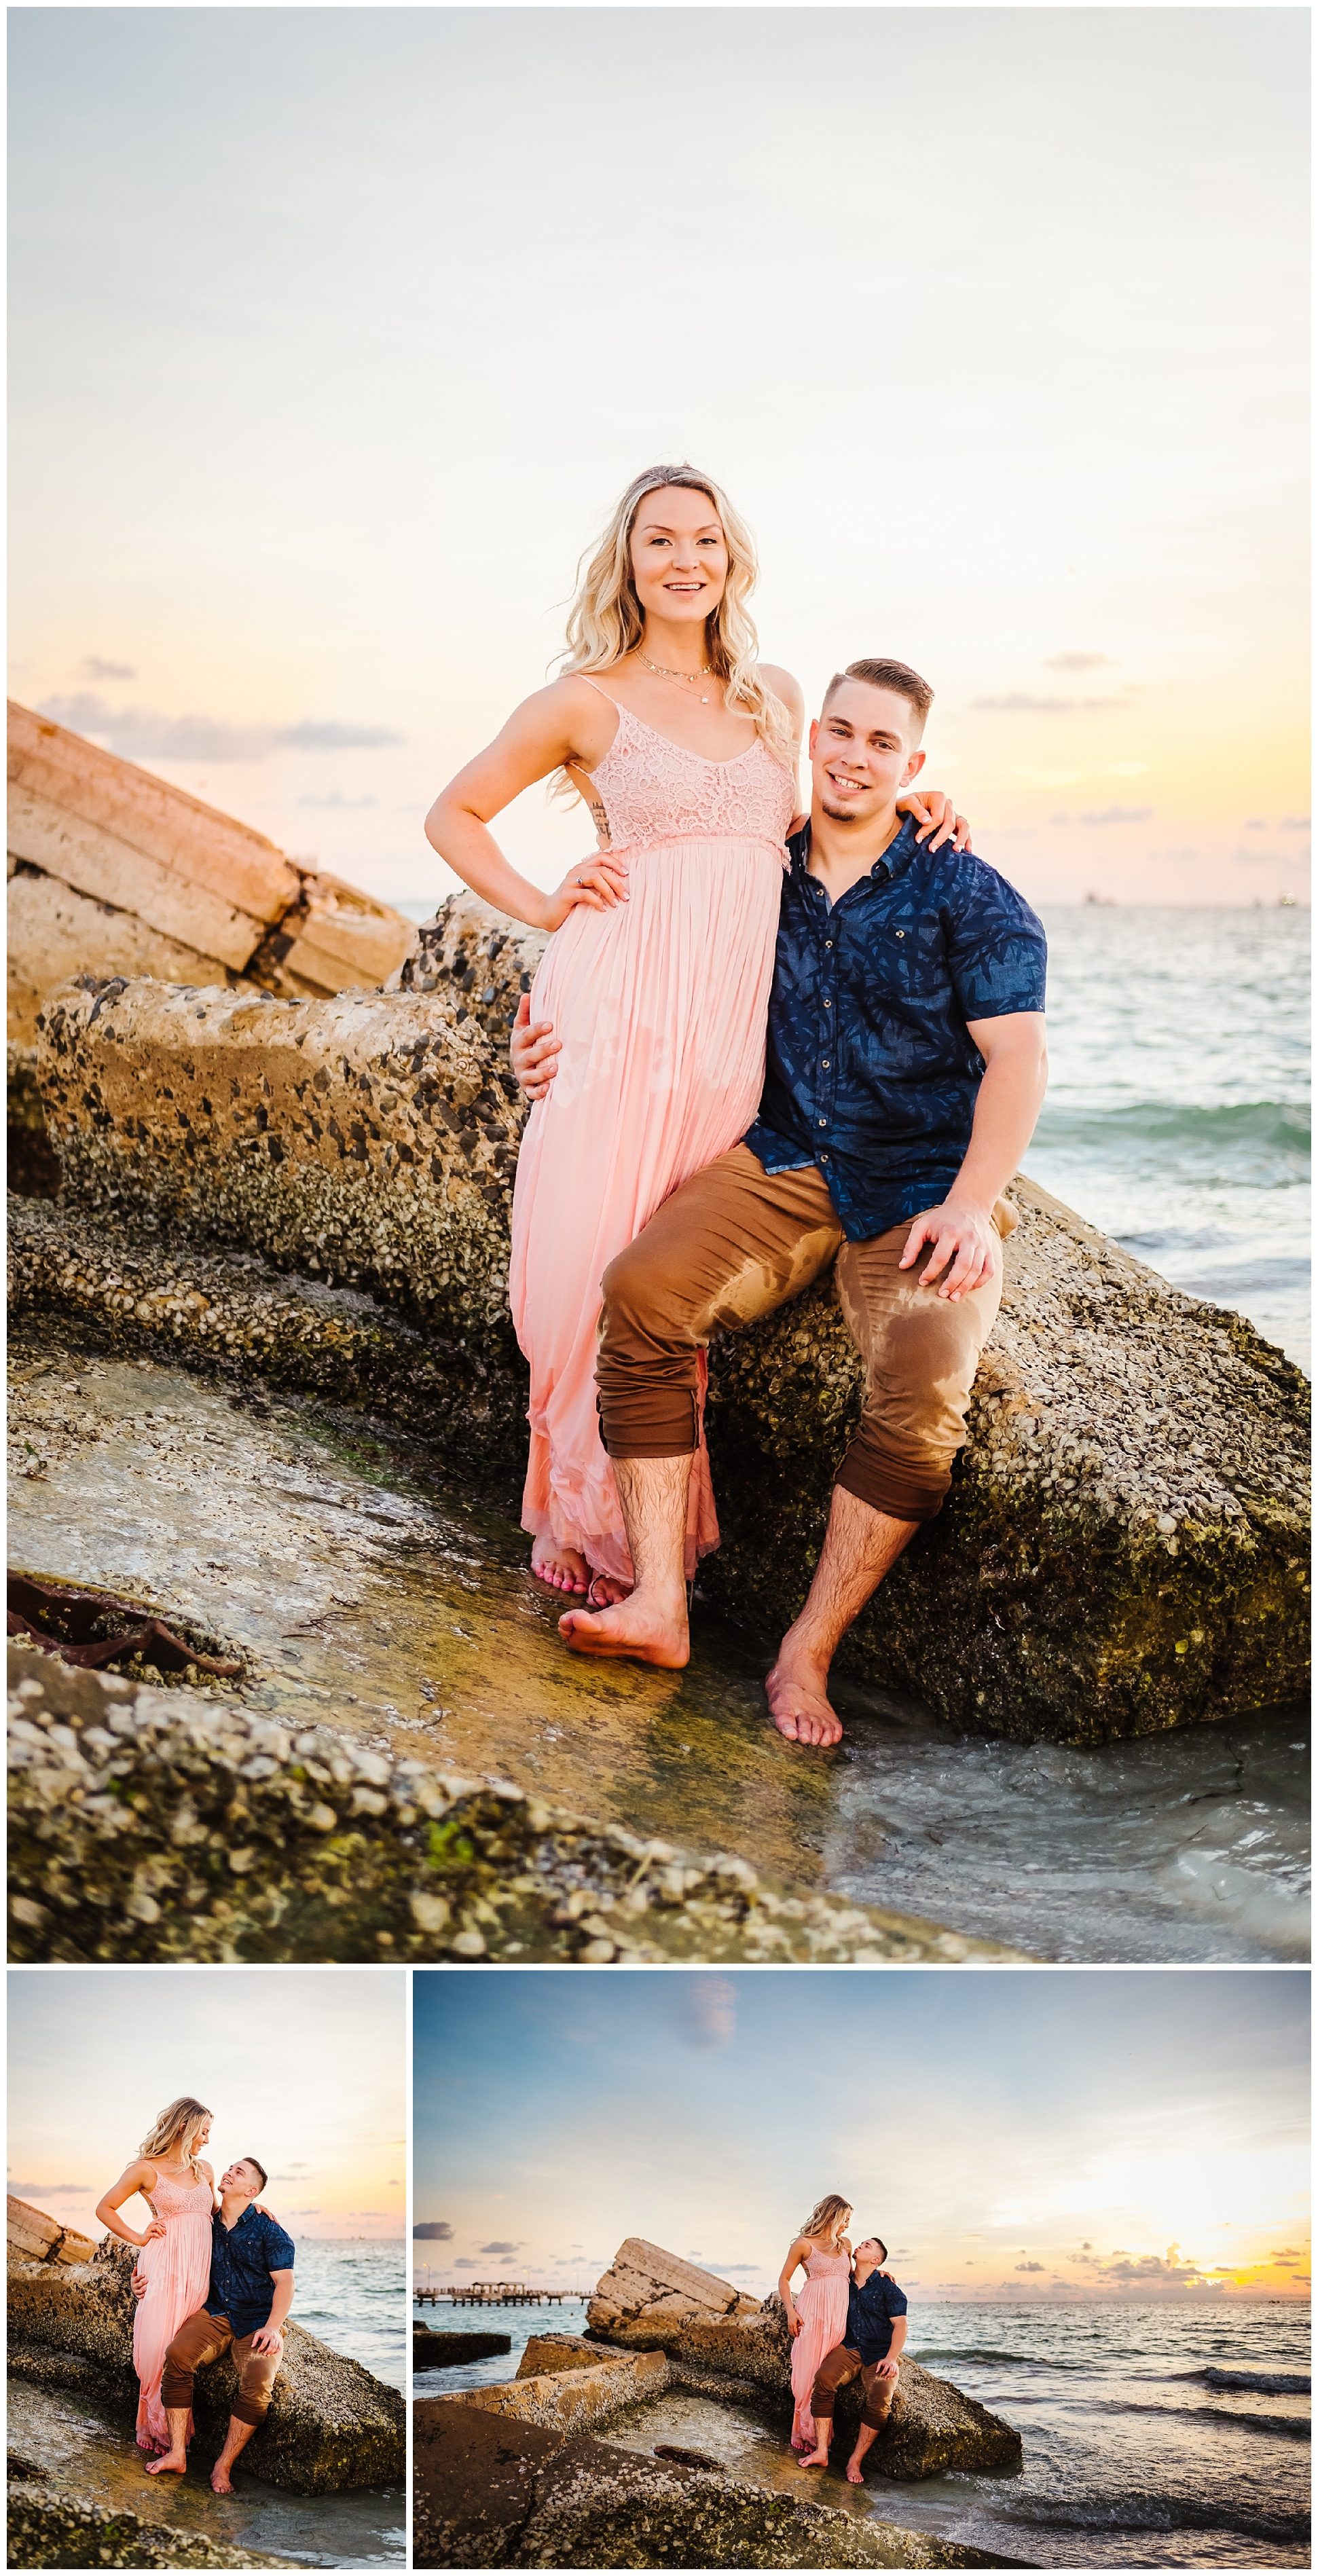 fort-desoto-engagement-photos-florida-beach-sunset_0241.jpg